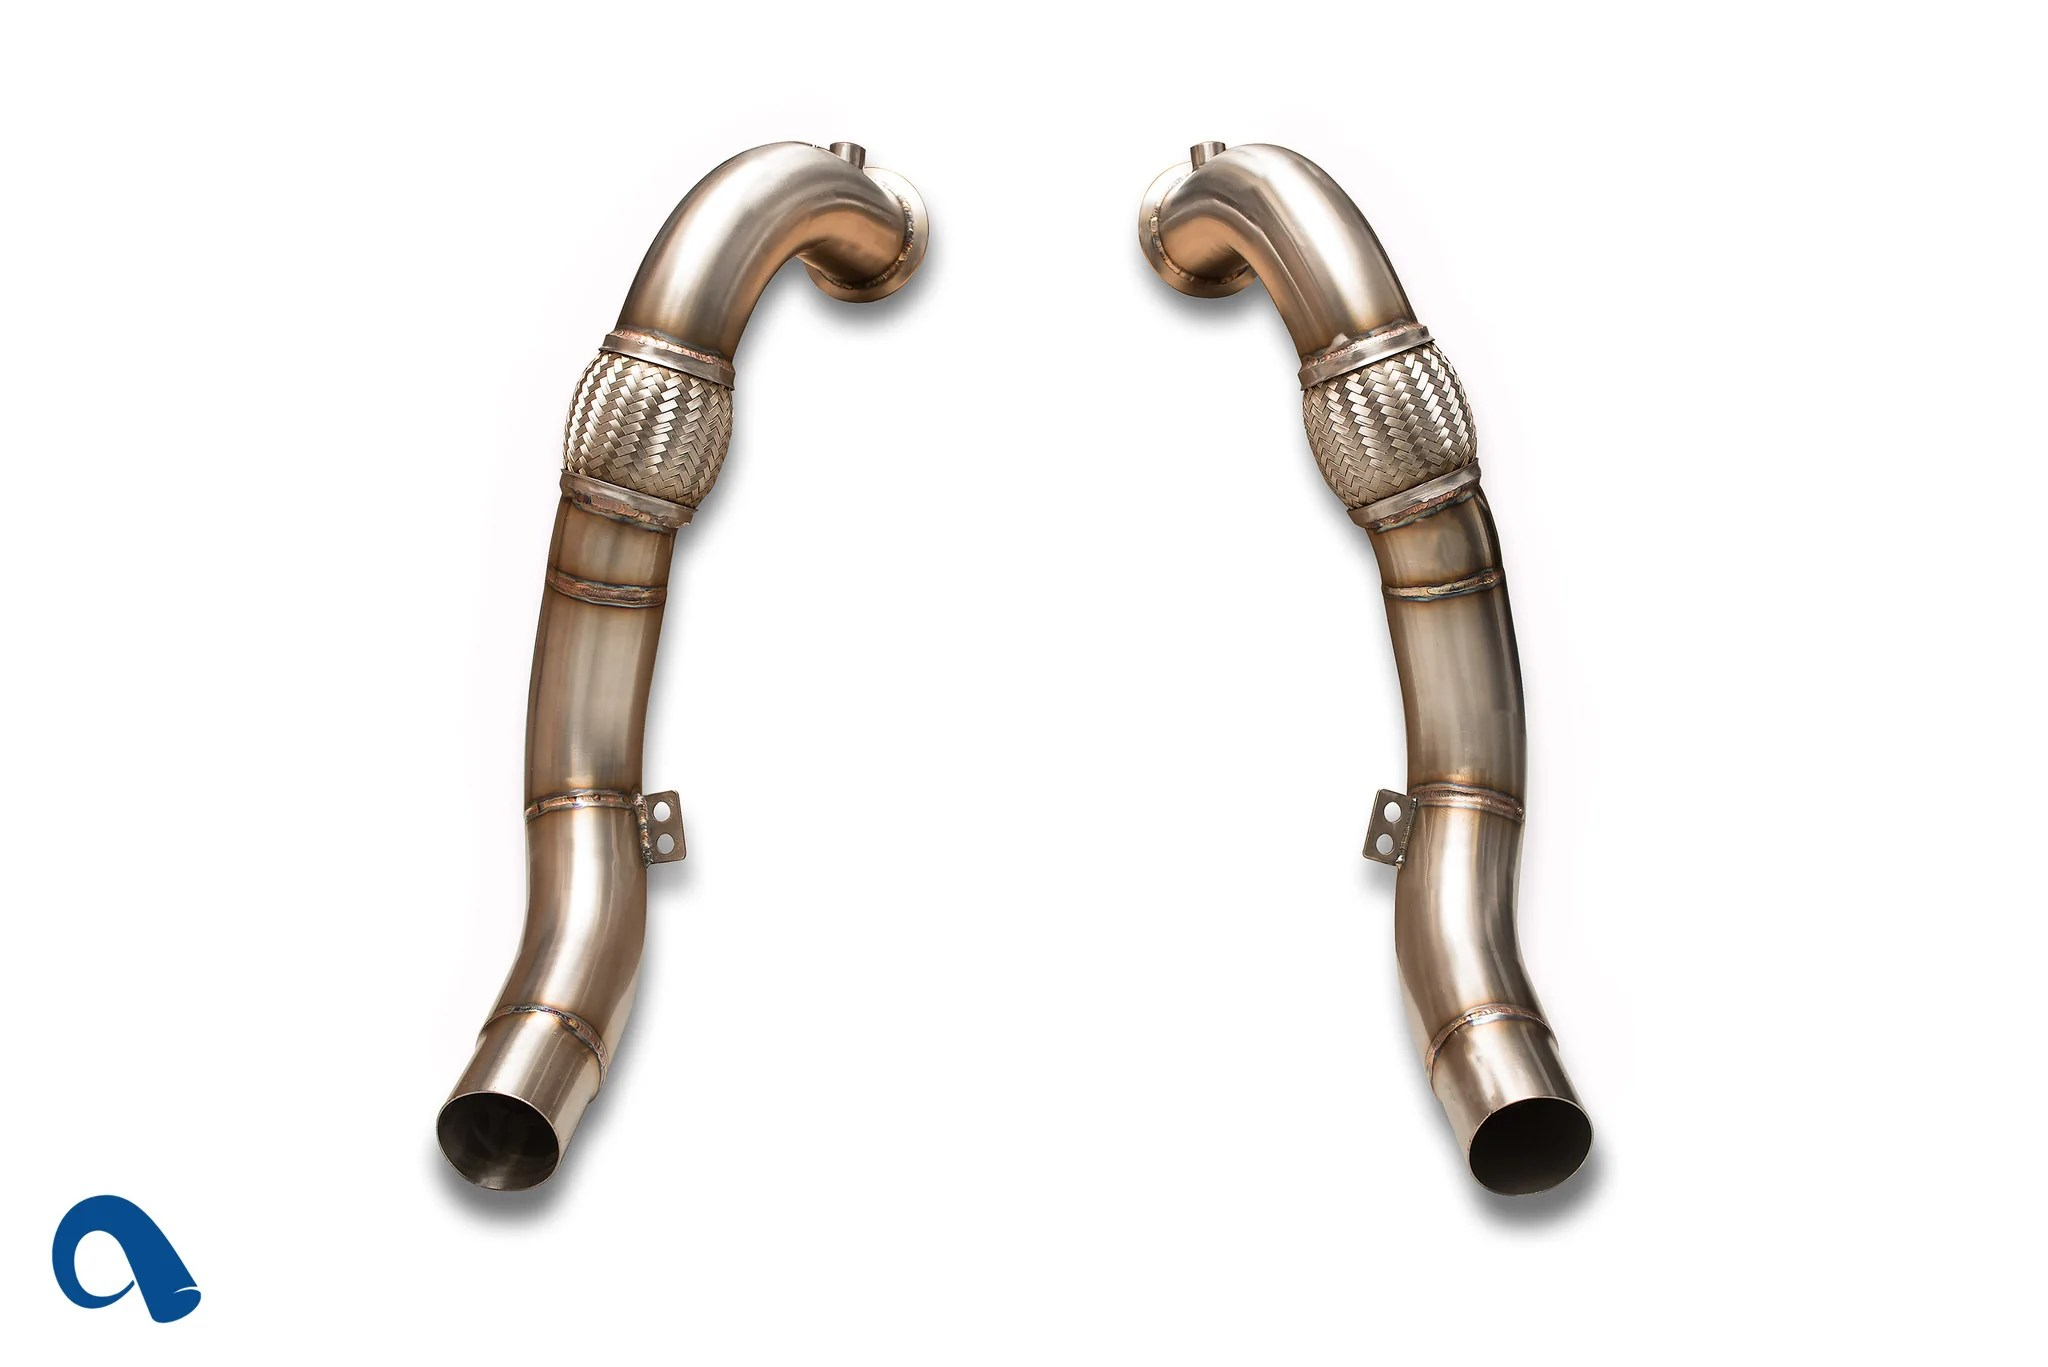 hight resolution of bmw n63 downpipes for twin turbo v8 bmw x5 and x6 f10 550i by bmw active autowerke